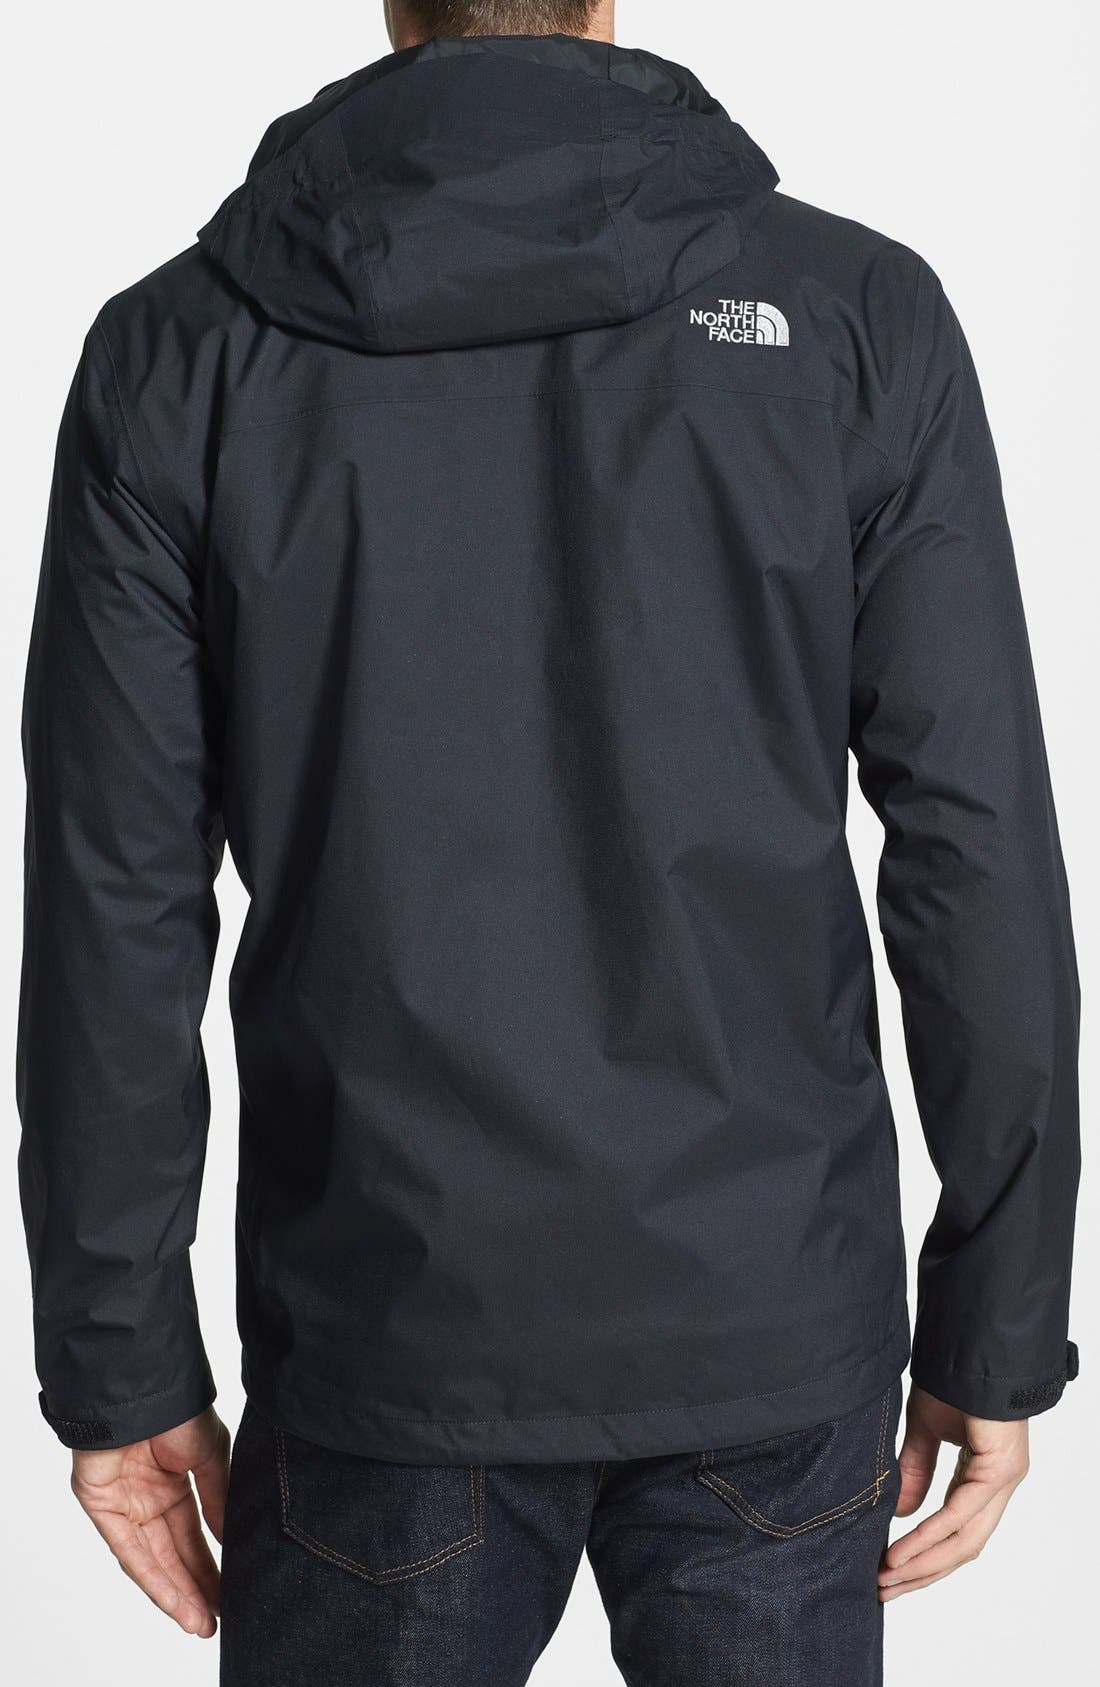 THE NORTH FACE, 'Momentum TriClimate' 3-in-1 Waterproof Hooded Jacket, Alternate thumbnail 2, color, 001